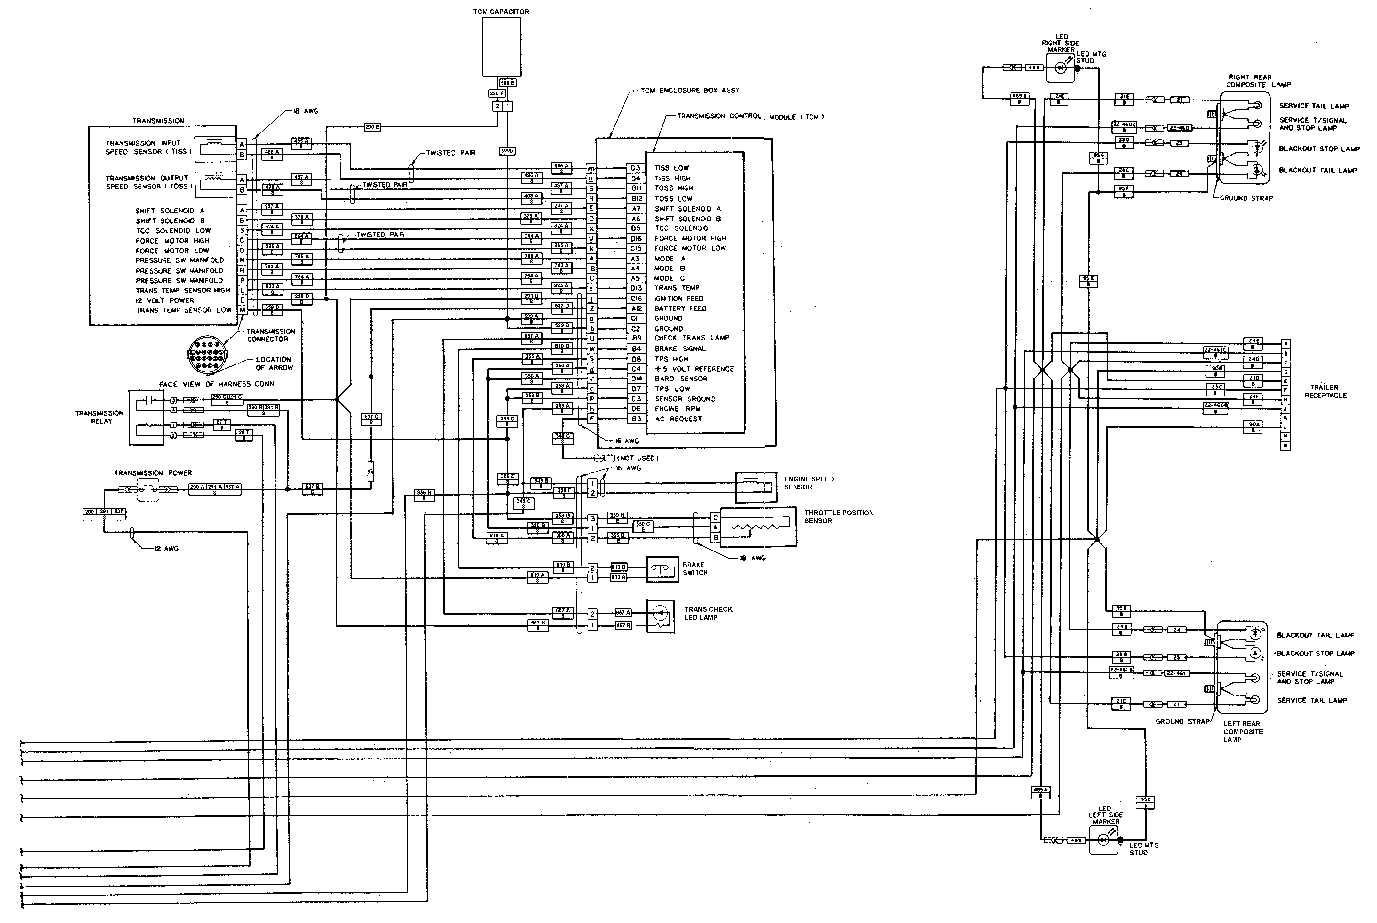 Reversing Drum Switch Wiring Diagram together with Rv Wiring Diagram moreover 1973 Chevy Power Steering Diagram furthermore Discussion T10147 ds680287 also Ford Ignition Wiring Diagram. on 1968 mustang wiring diagram